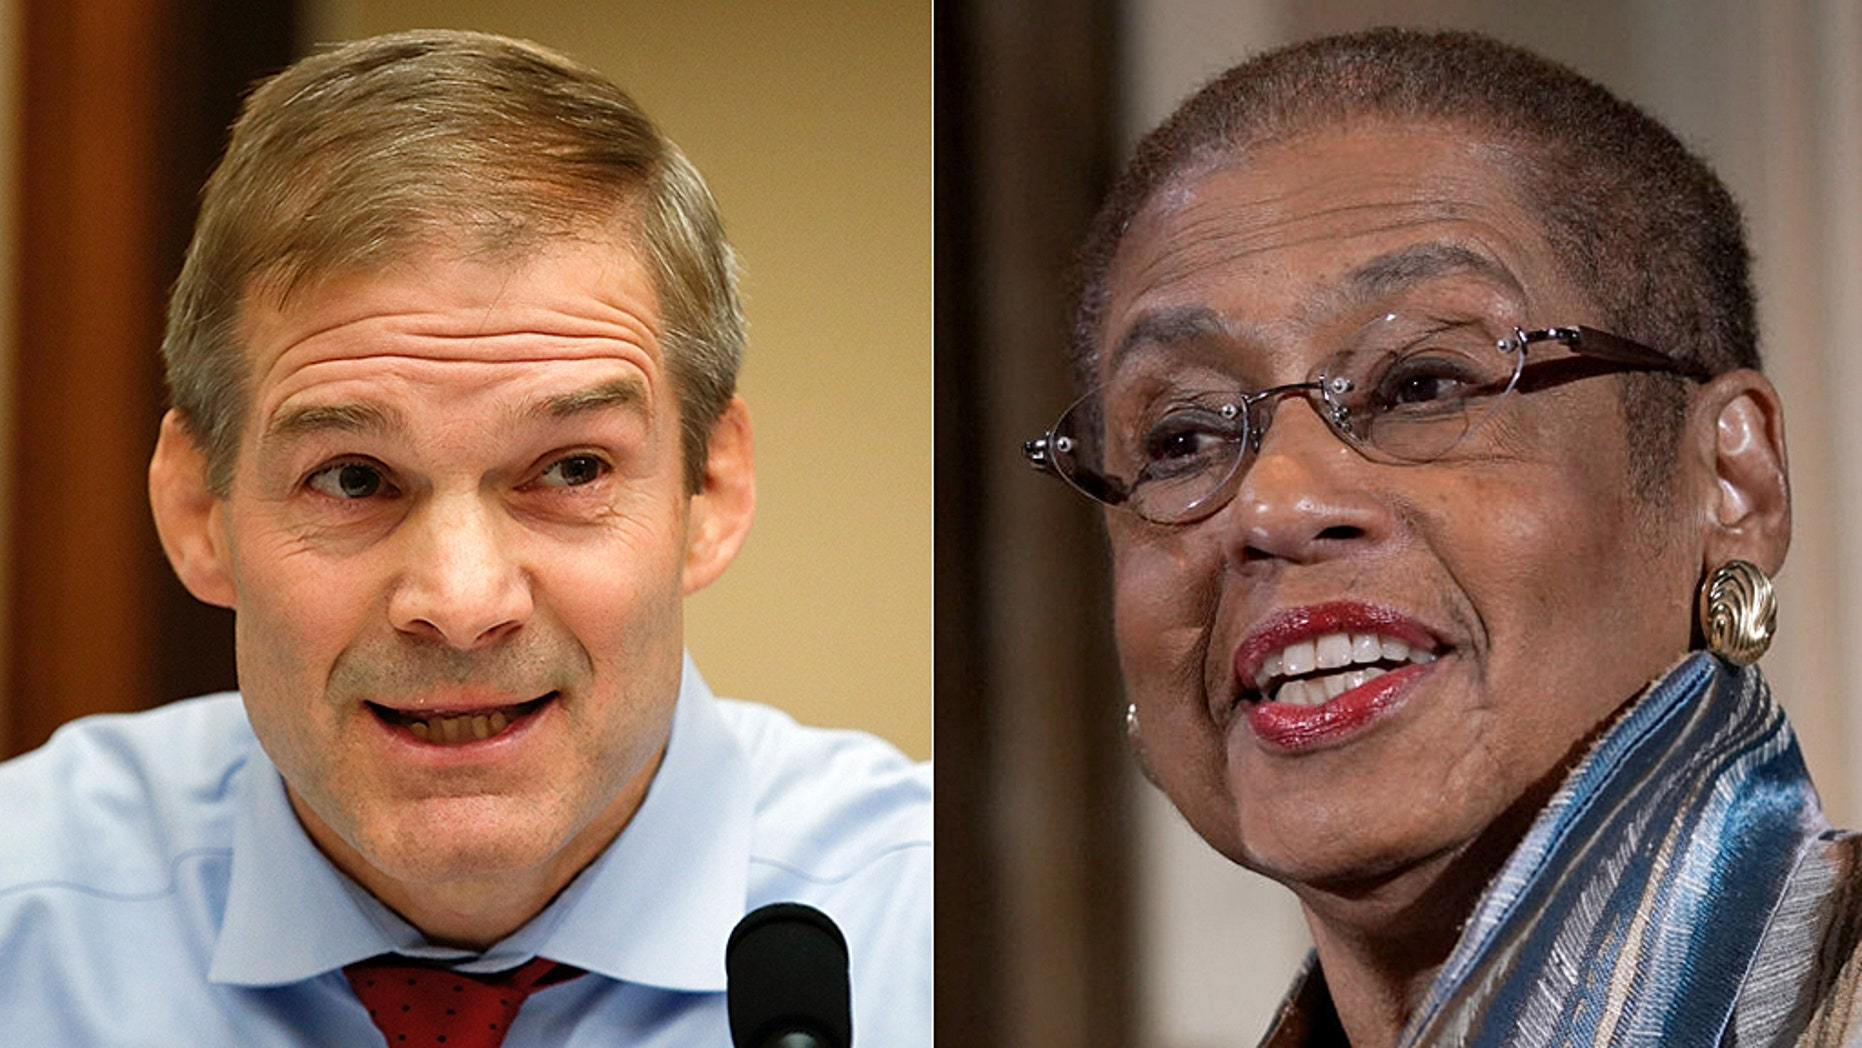 Ohio Rep. Jim Jordan, left, the top Republican on the House Oversight and Reform Committee, aired concerns about recent scandals involving D.C. city officials. Del. Eleanor Holmes Norton has sponsored a D.C. statehood bill.